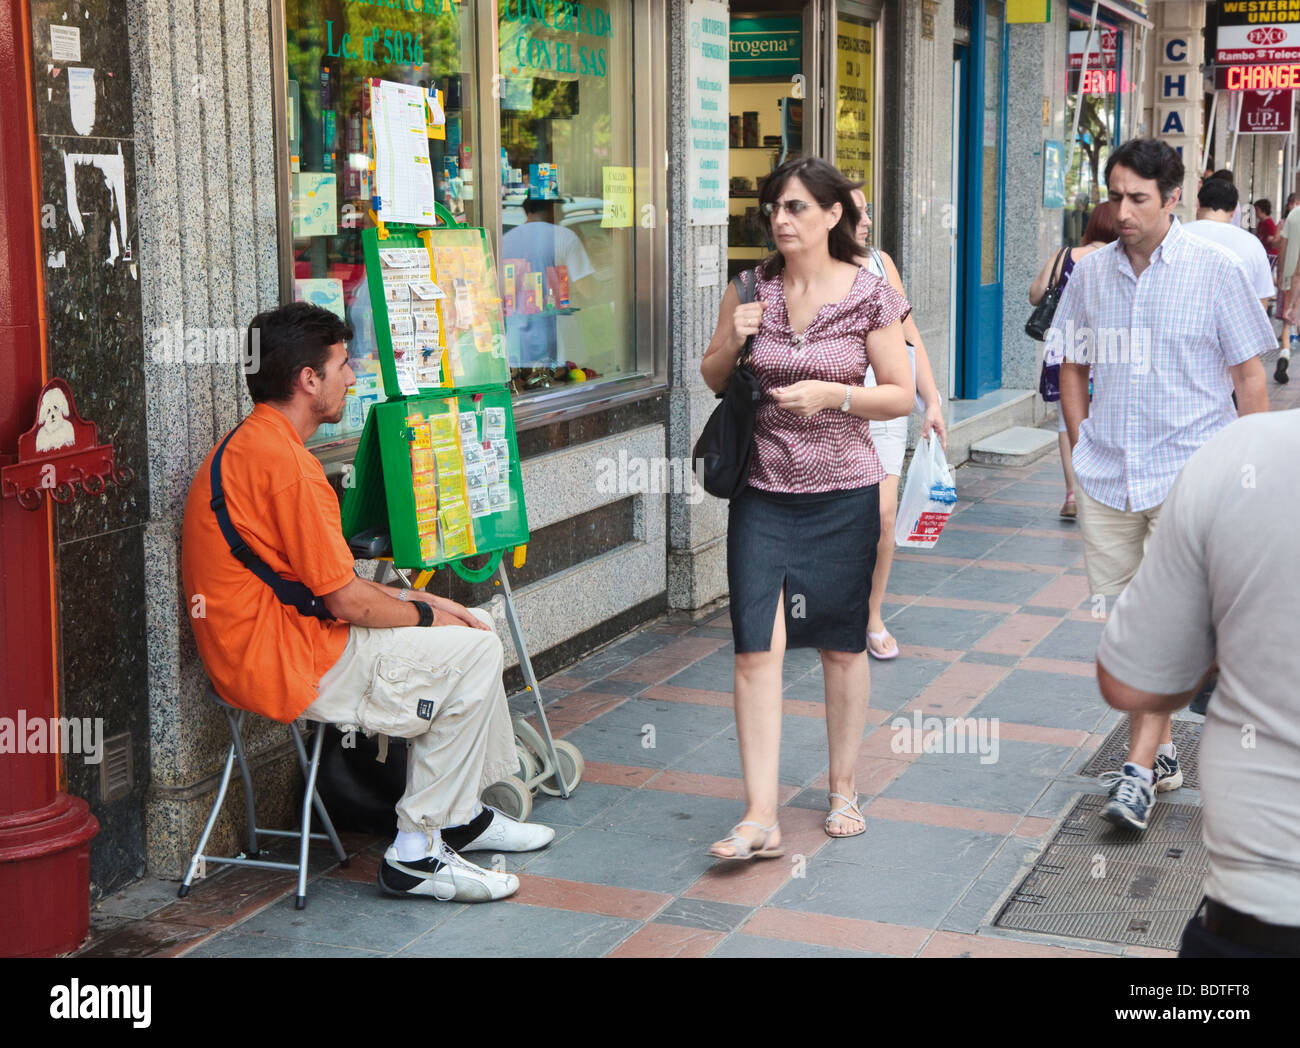 Blind lottery ticket seller working in street Fuengirola, Costa del Sol, Malaga Province, Spain - Stock Image